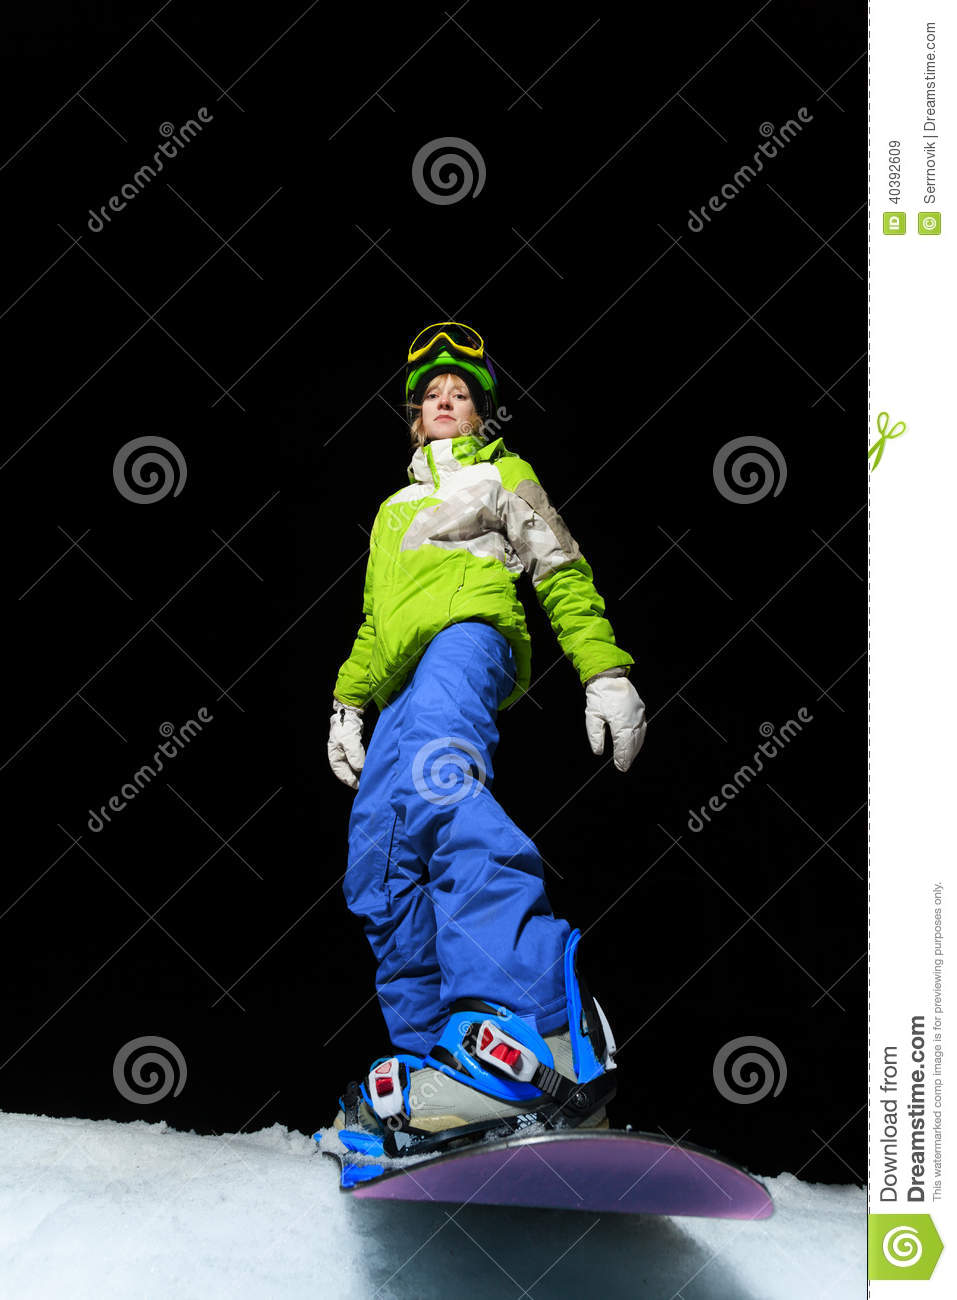 eb48a74e8562 Portrait of cool snowboard girl ready to slide down the mountain at night